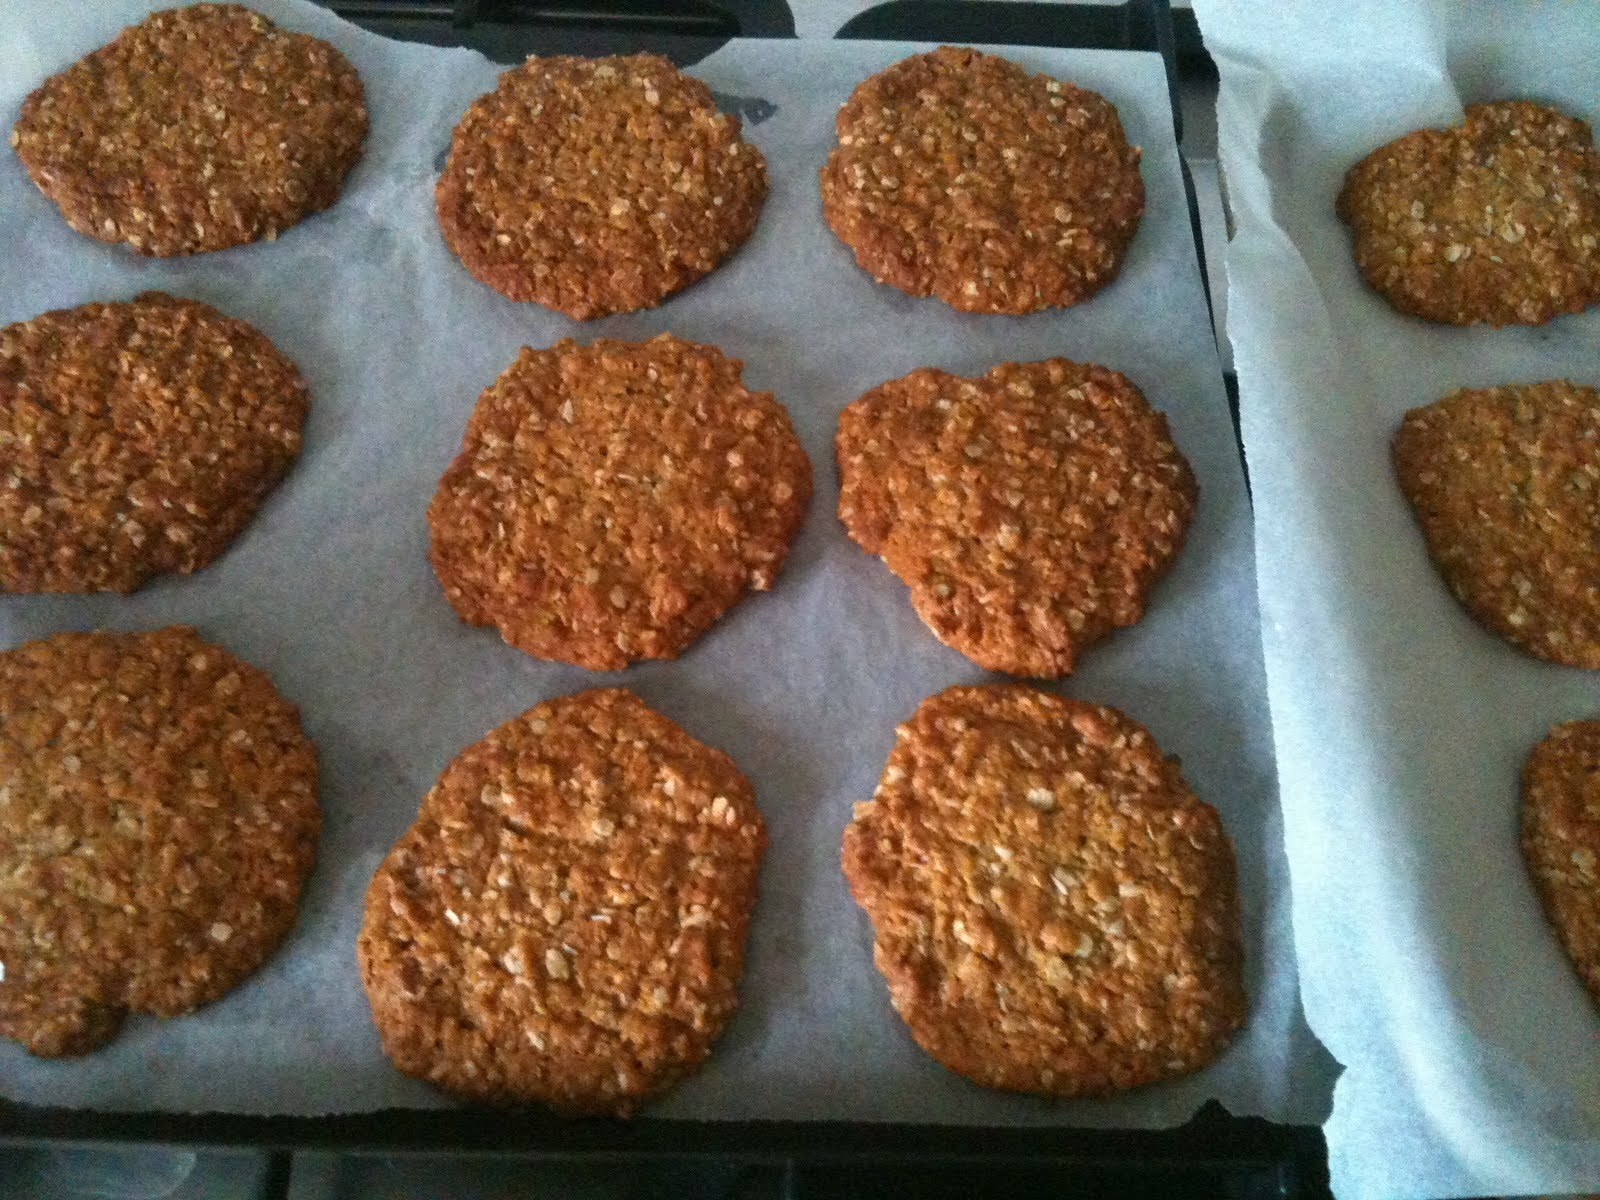 Anzac Biscuits and Chocolate Nut Biscuits